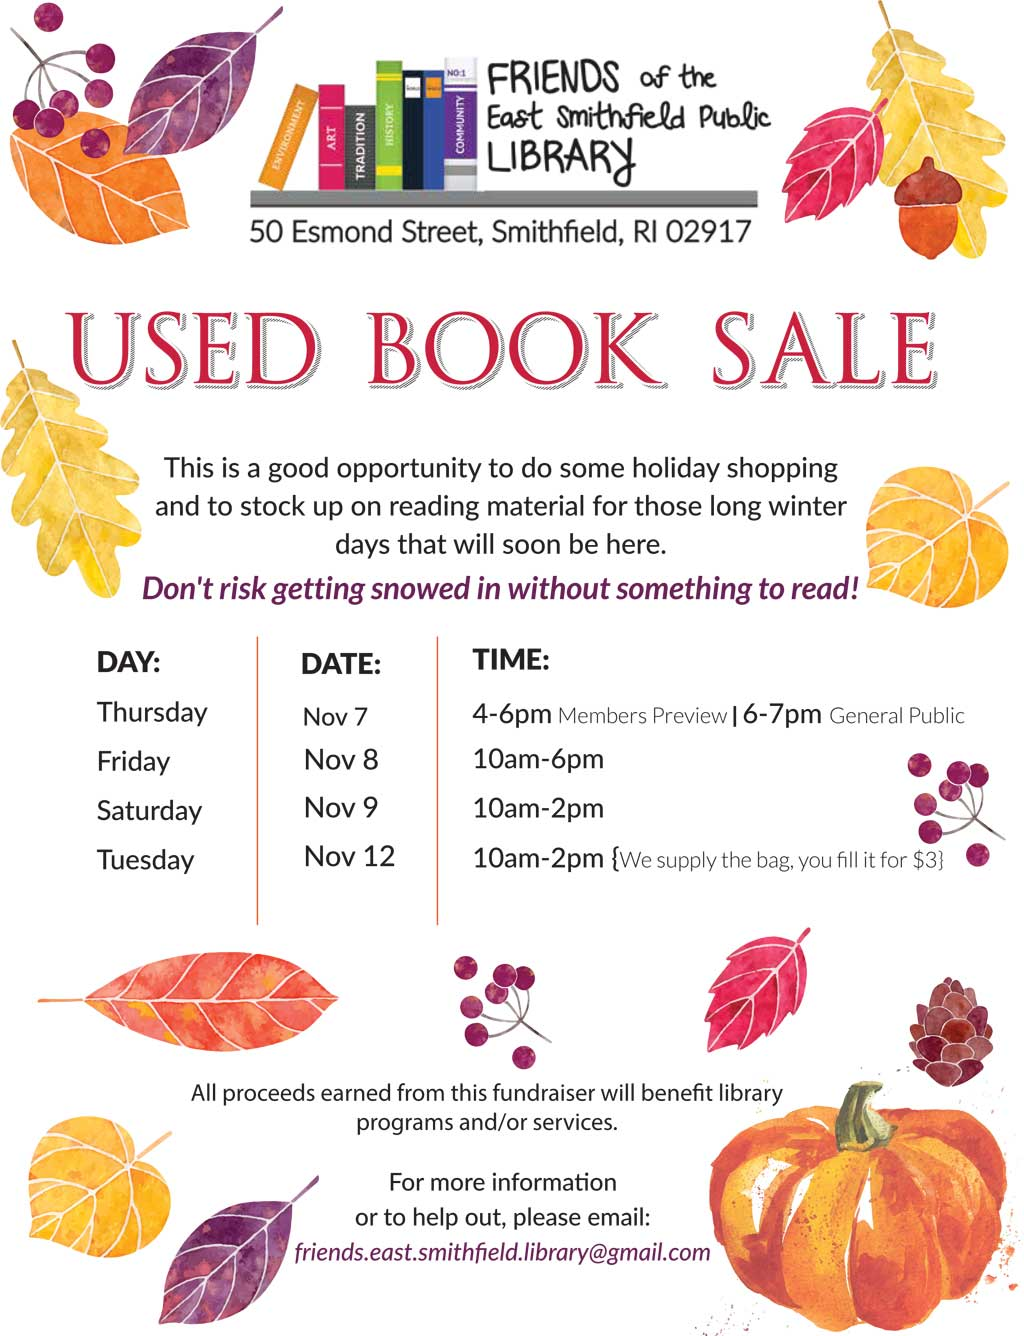 East Smithfield Public Library Used Book Sale Dates